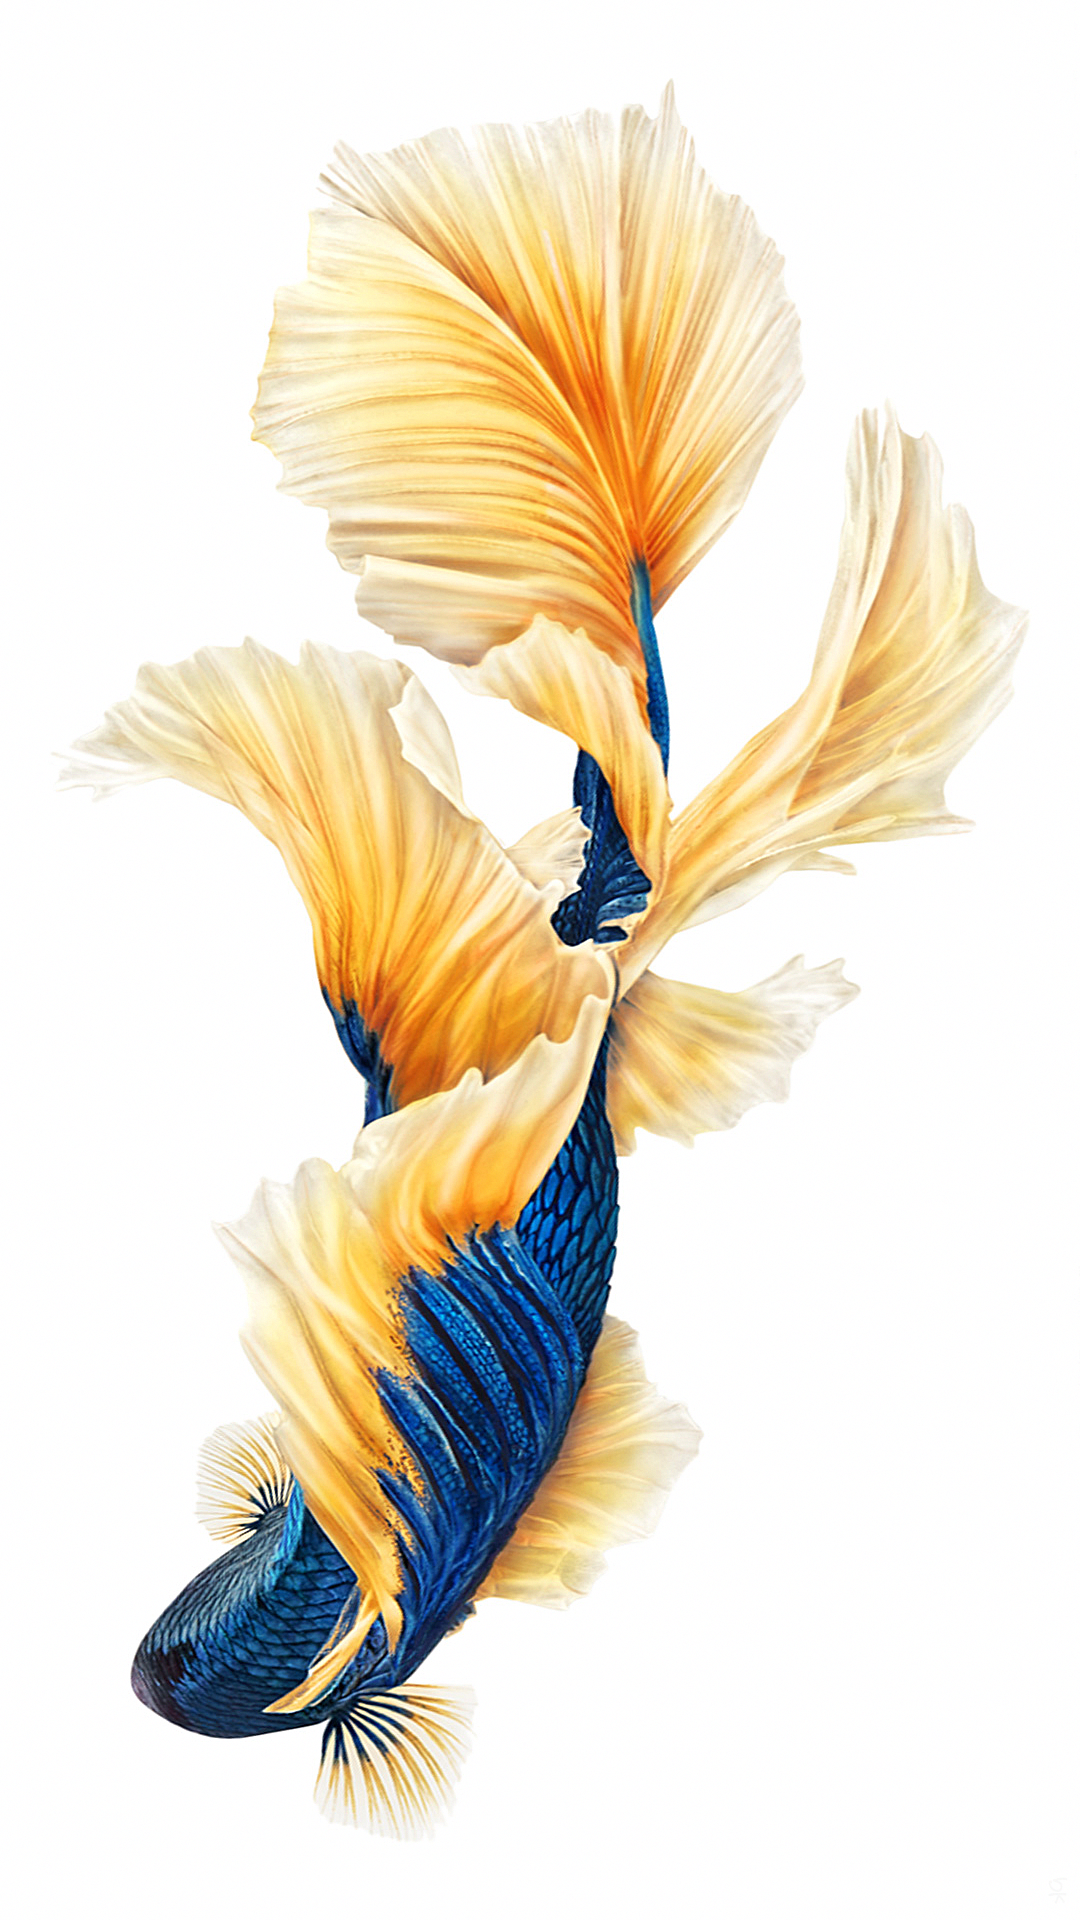 Gold Blue Fish Nature Wallpapers Tap To See More Iphone 6 Iphone 6s Still Wallpapers Background Fish Wallpaper Iphone Fish Wallpaper Gold Wallpaper Iphone